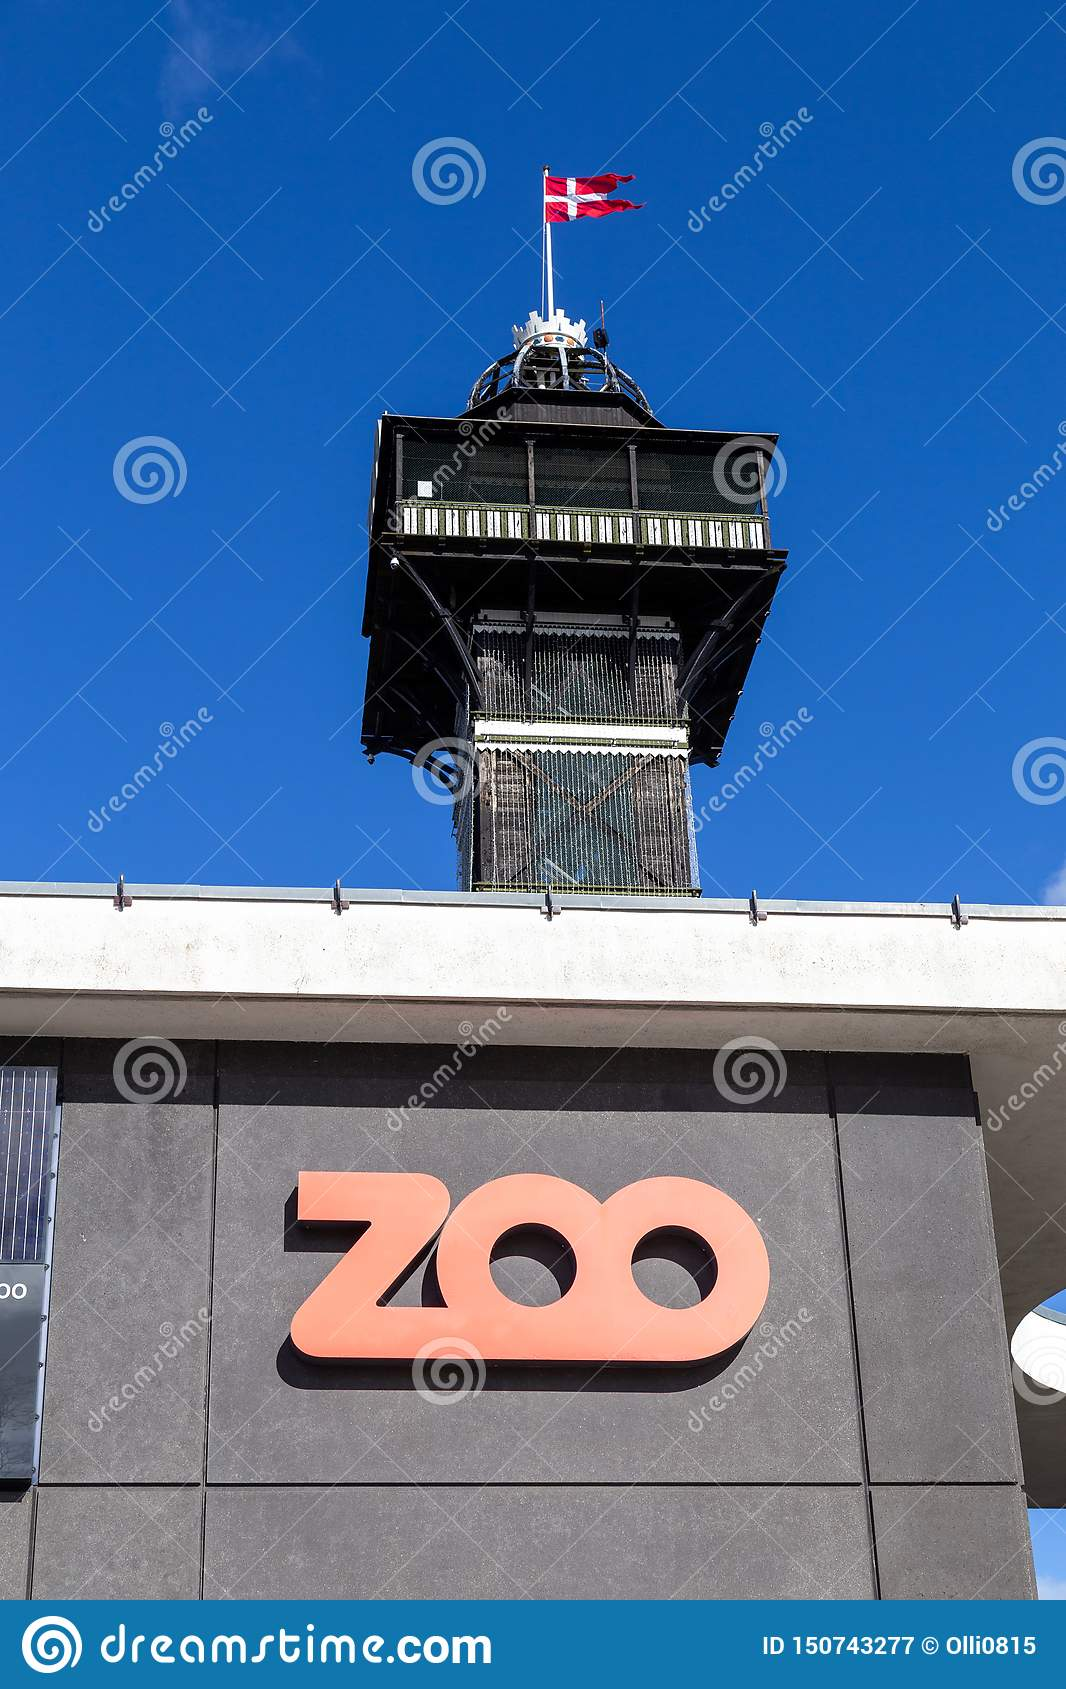 1 246 Zoo Tower Photos Free Royalty Free Stock Photos From Dreamstime